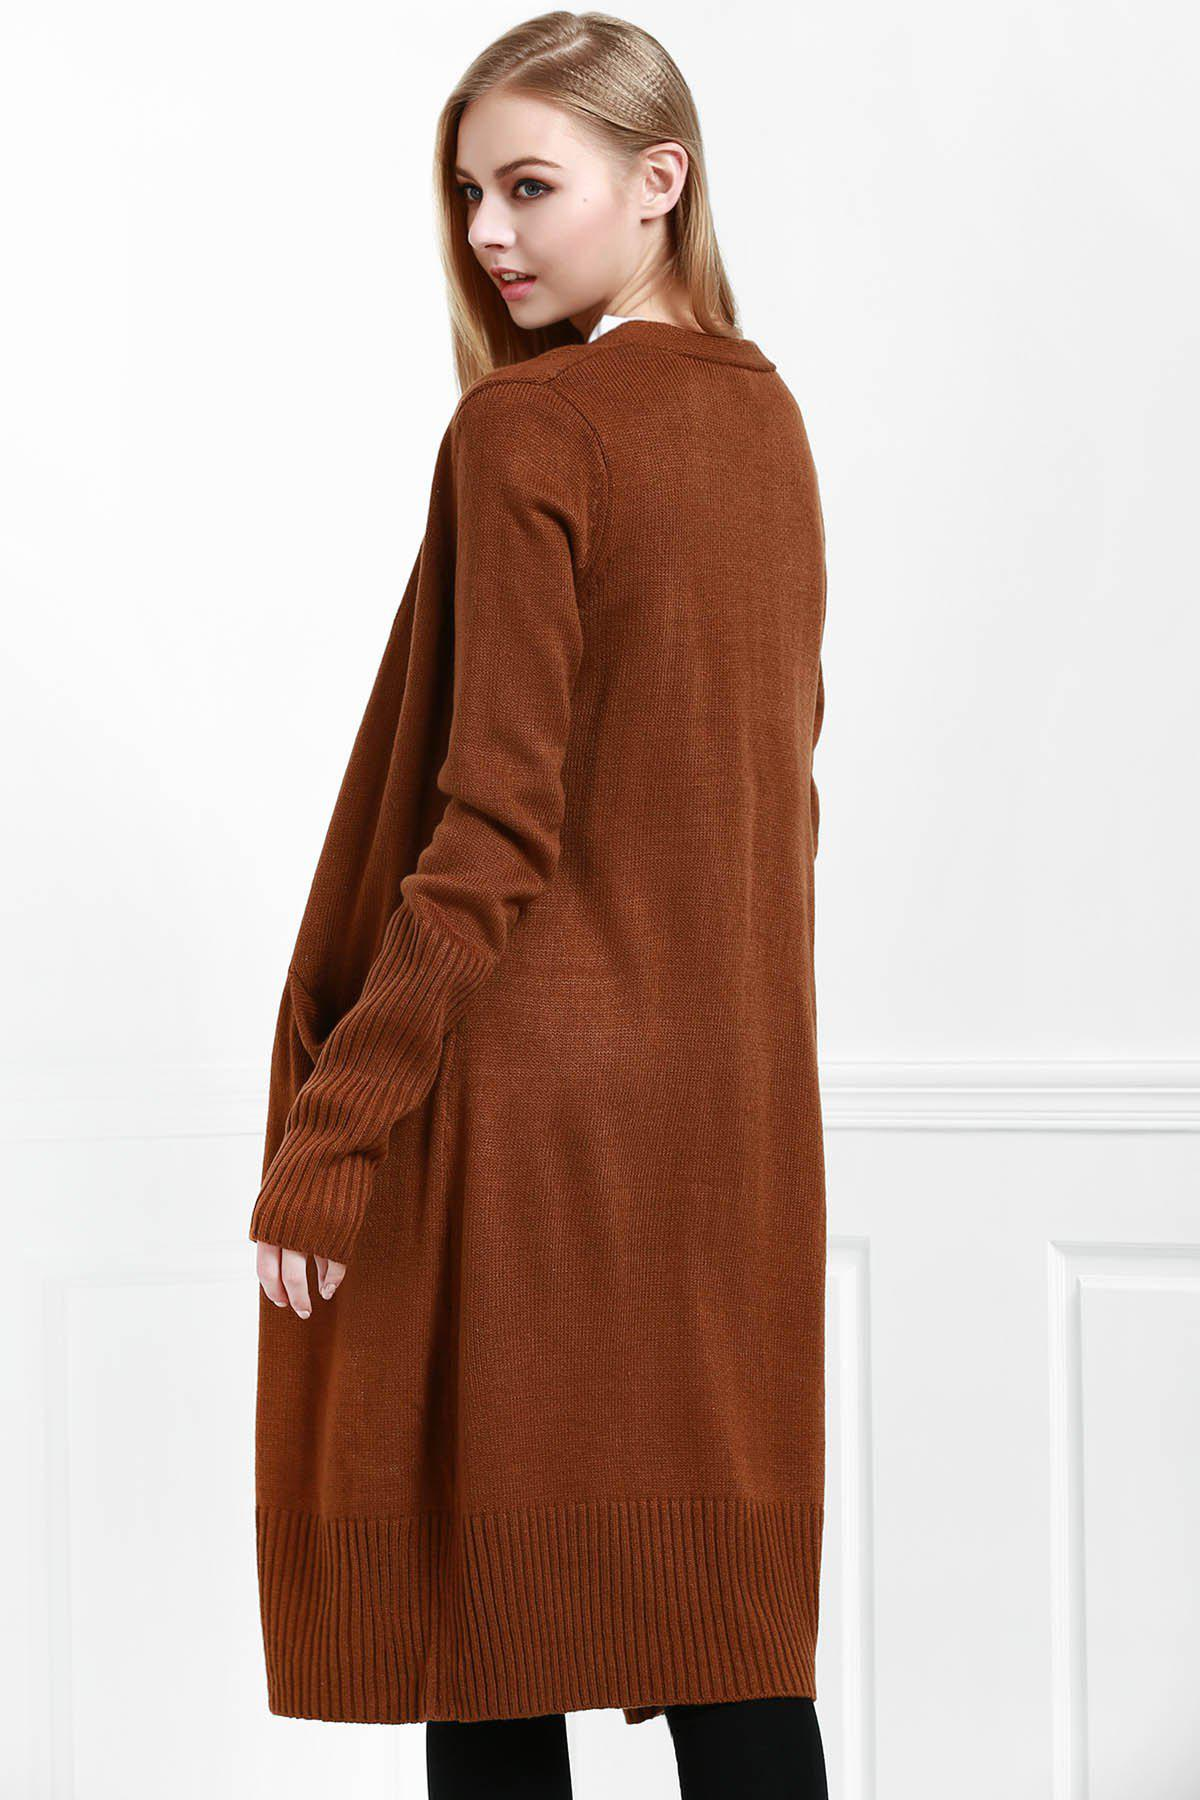 Open Front Pocket Long Cardigan - COFFEE M